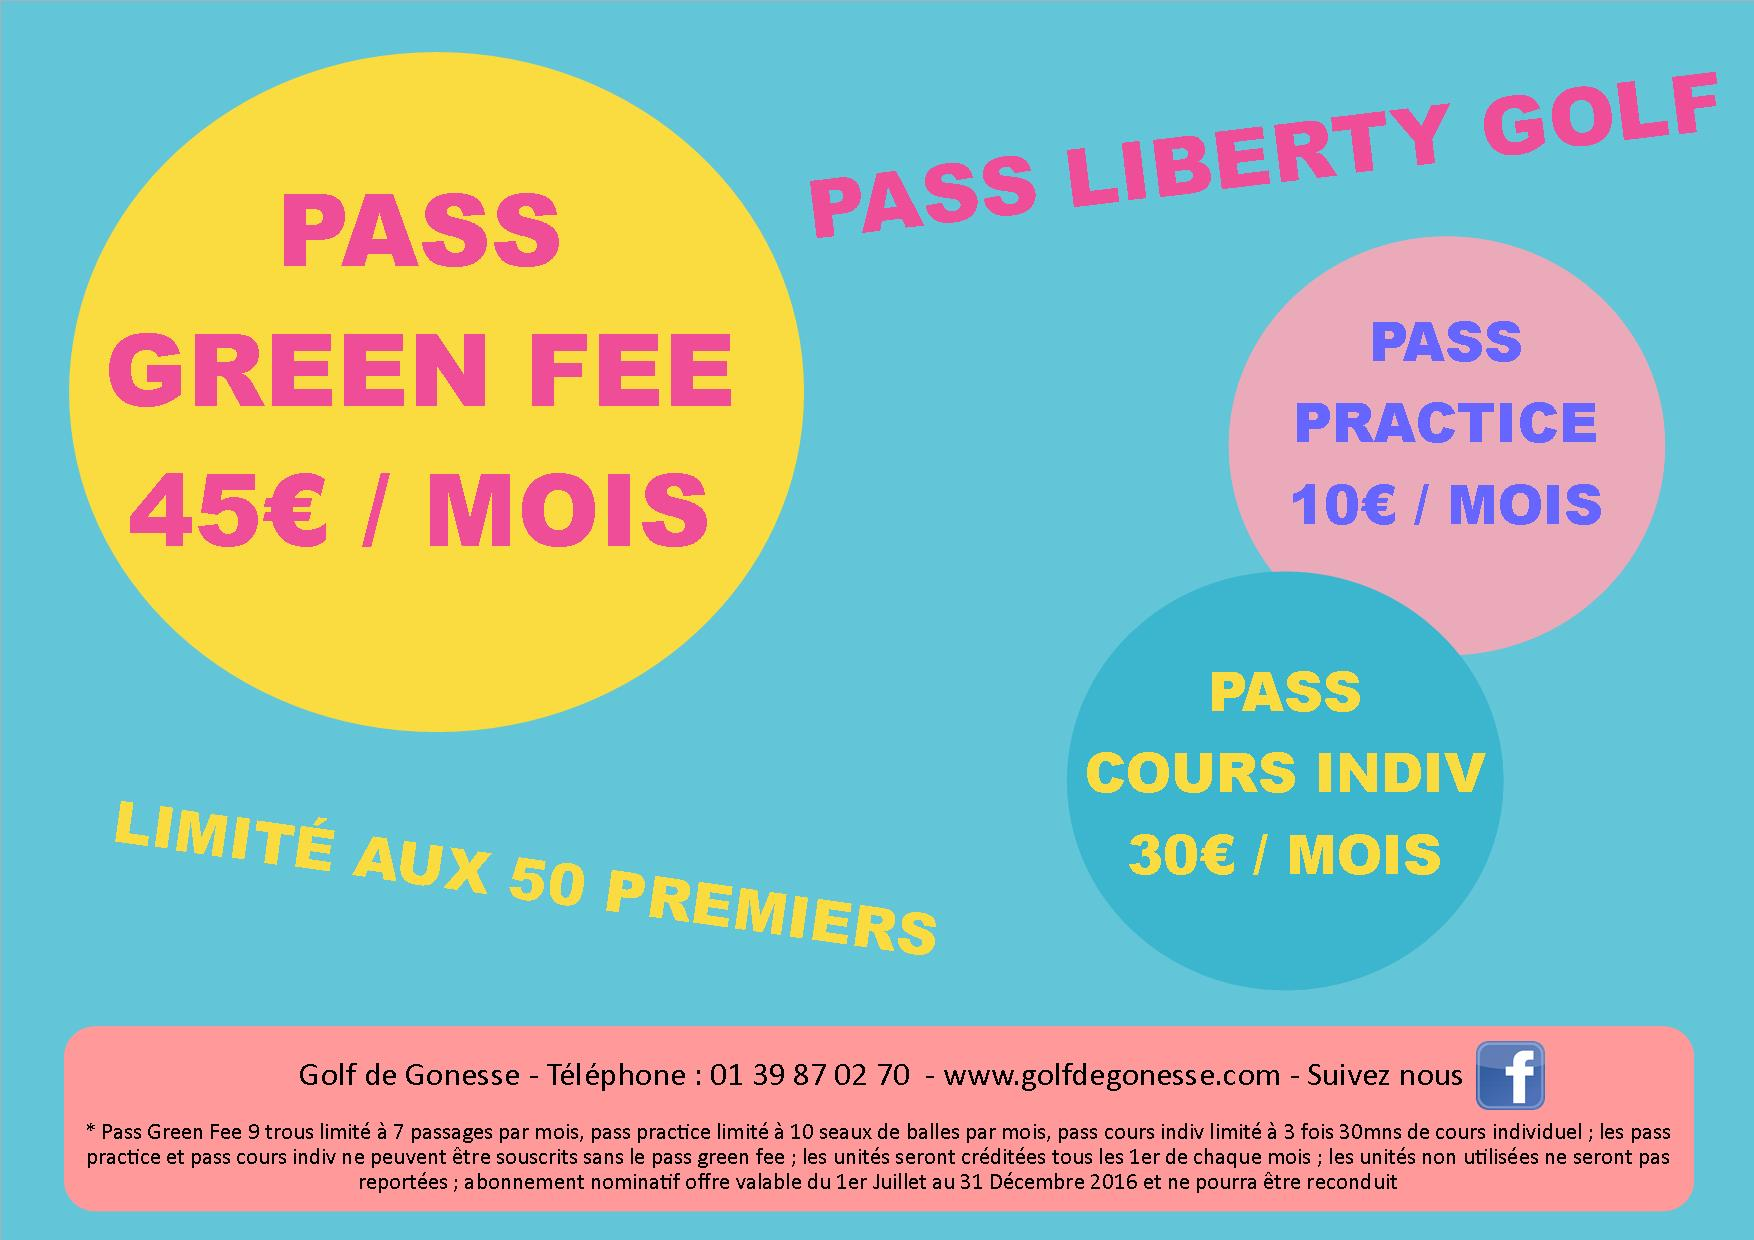 pass liberty gonesse